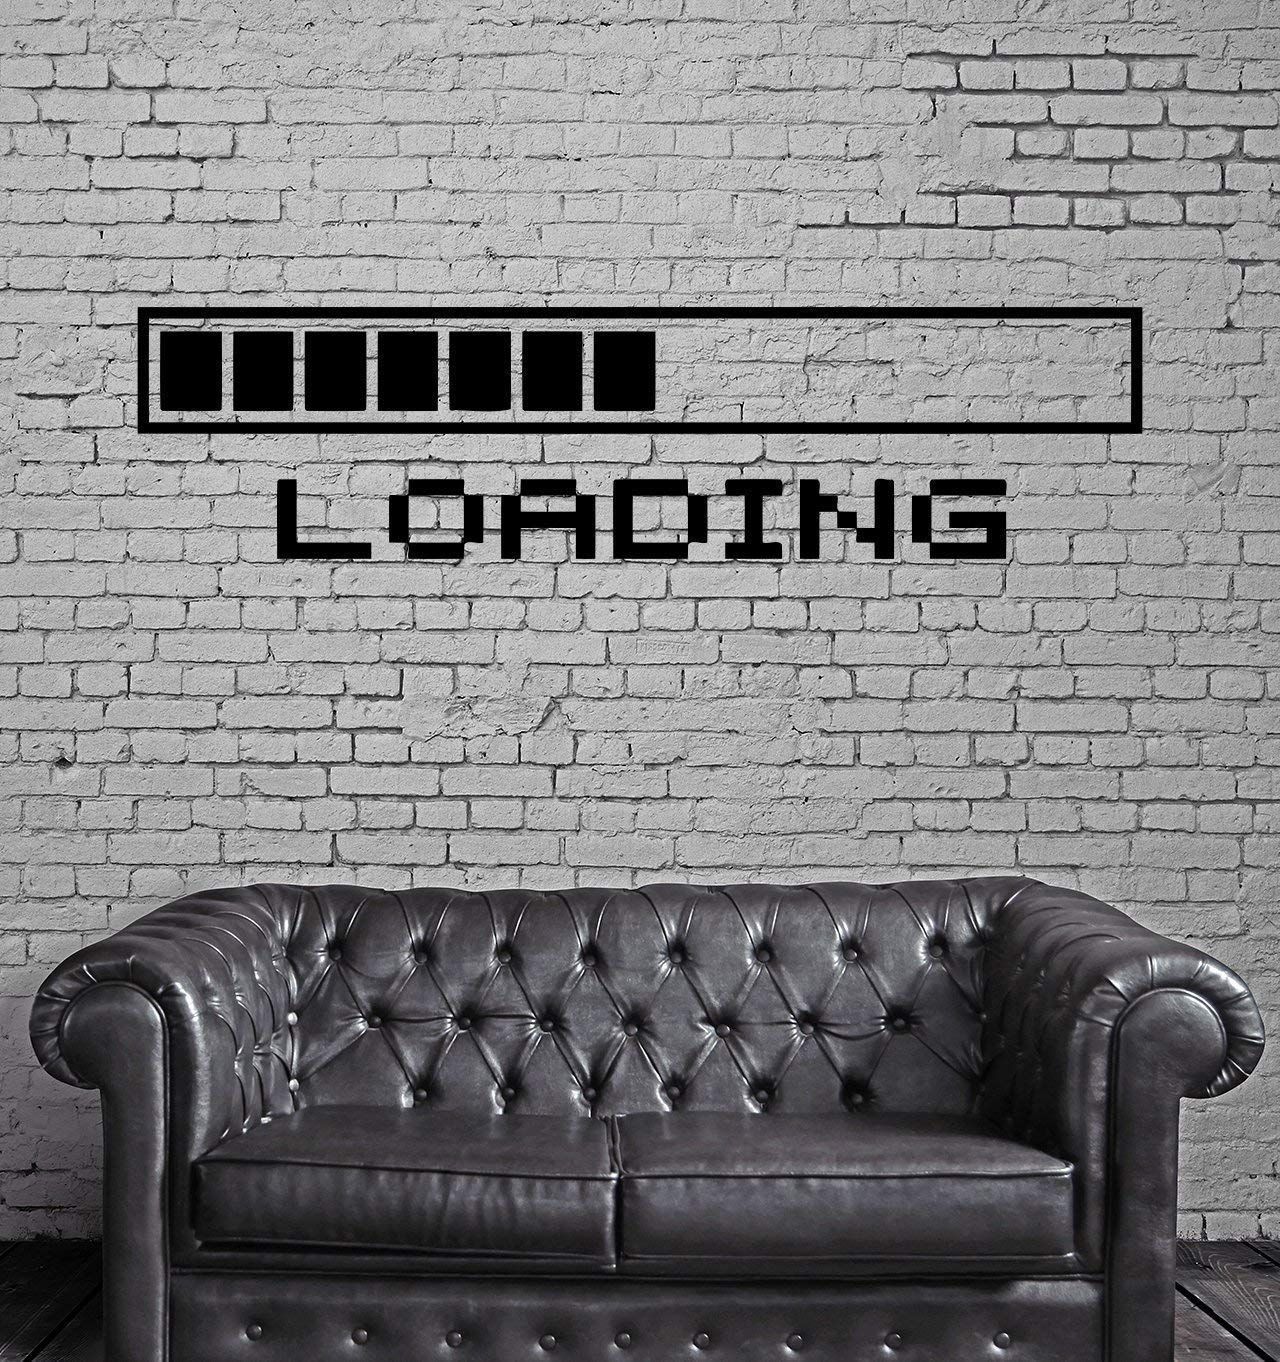 PICTURE IT ON CANVAS Loading a Video Game Wall Poster Decal Cool Gamer Stuff Computer Wall Stickers Murals Home Decor Accents by PICTURE IT ON CANVAS (Image #1)